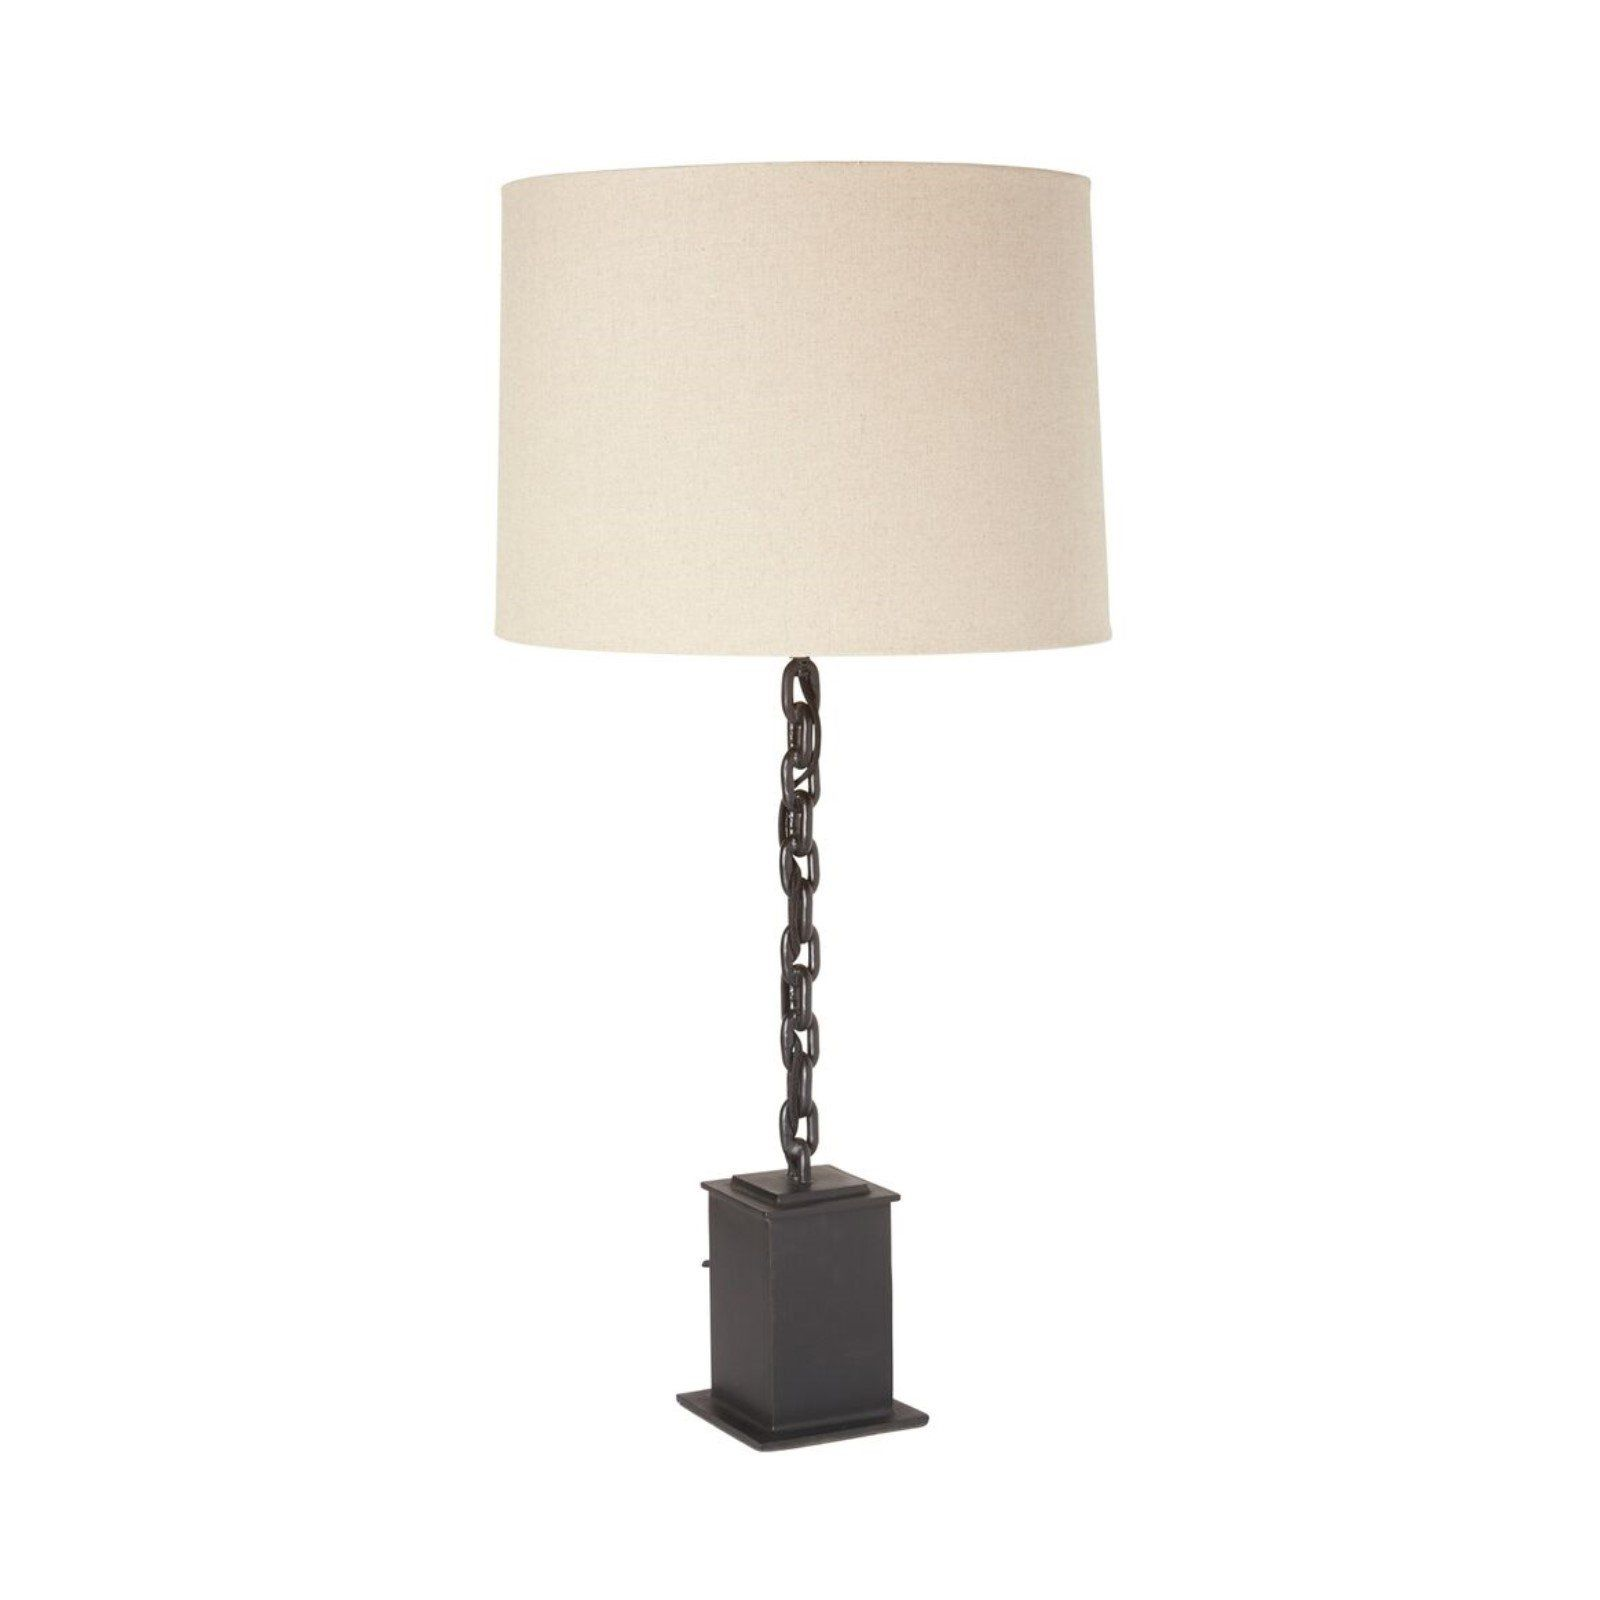 Mason table lamp with shade products